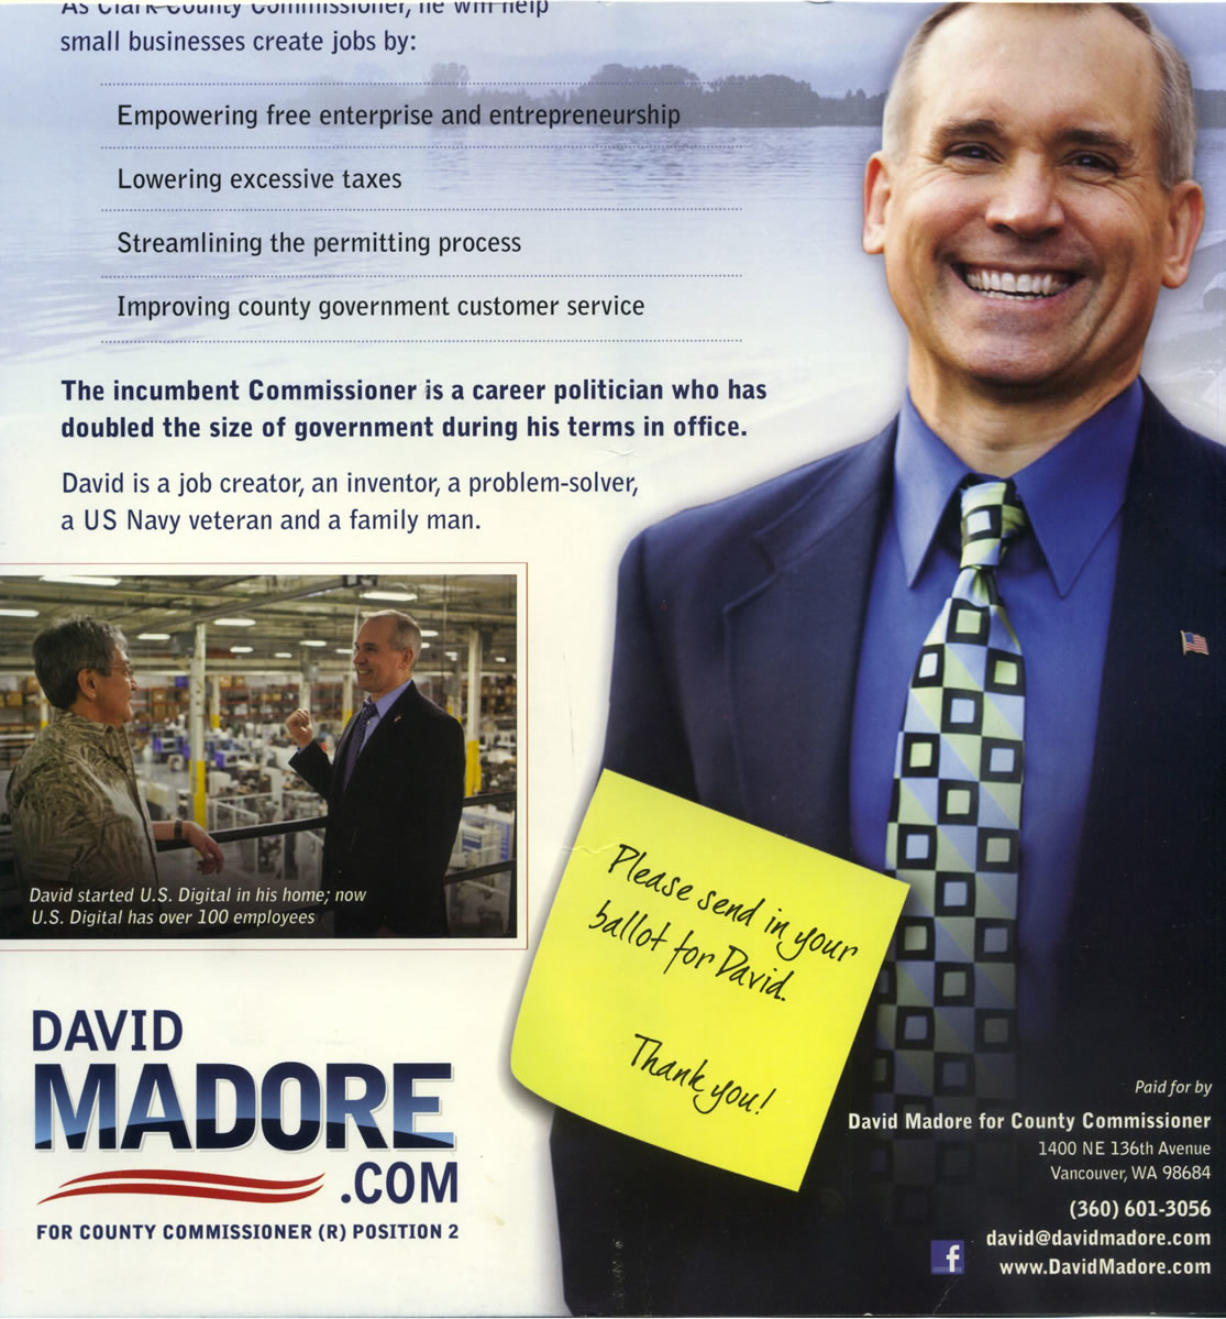 Candidate David Madore said he apologized to Clark County Commissioner Marc Boldt for including a false claim in a flier that Boldt has doubled the size of government. During Boldt's time in office, the county budget has decreased along with the number of county employees.